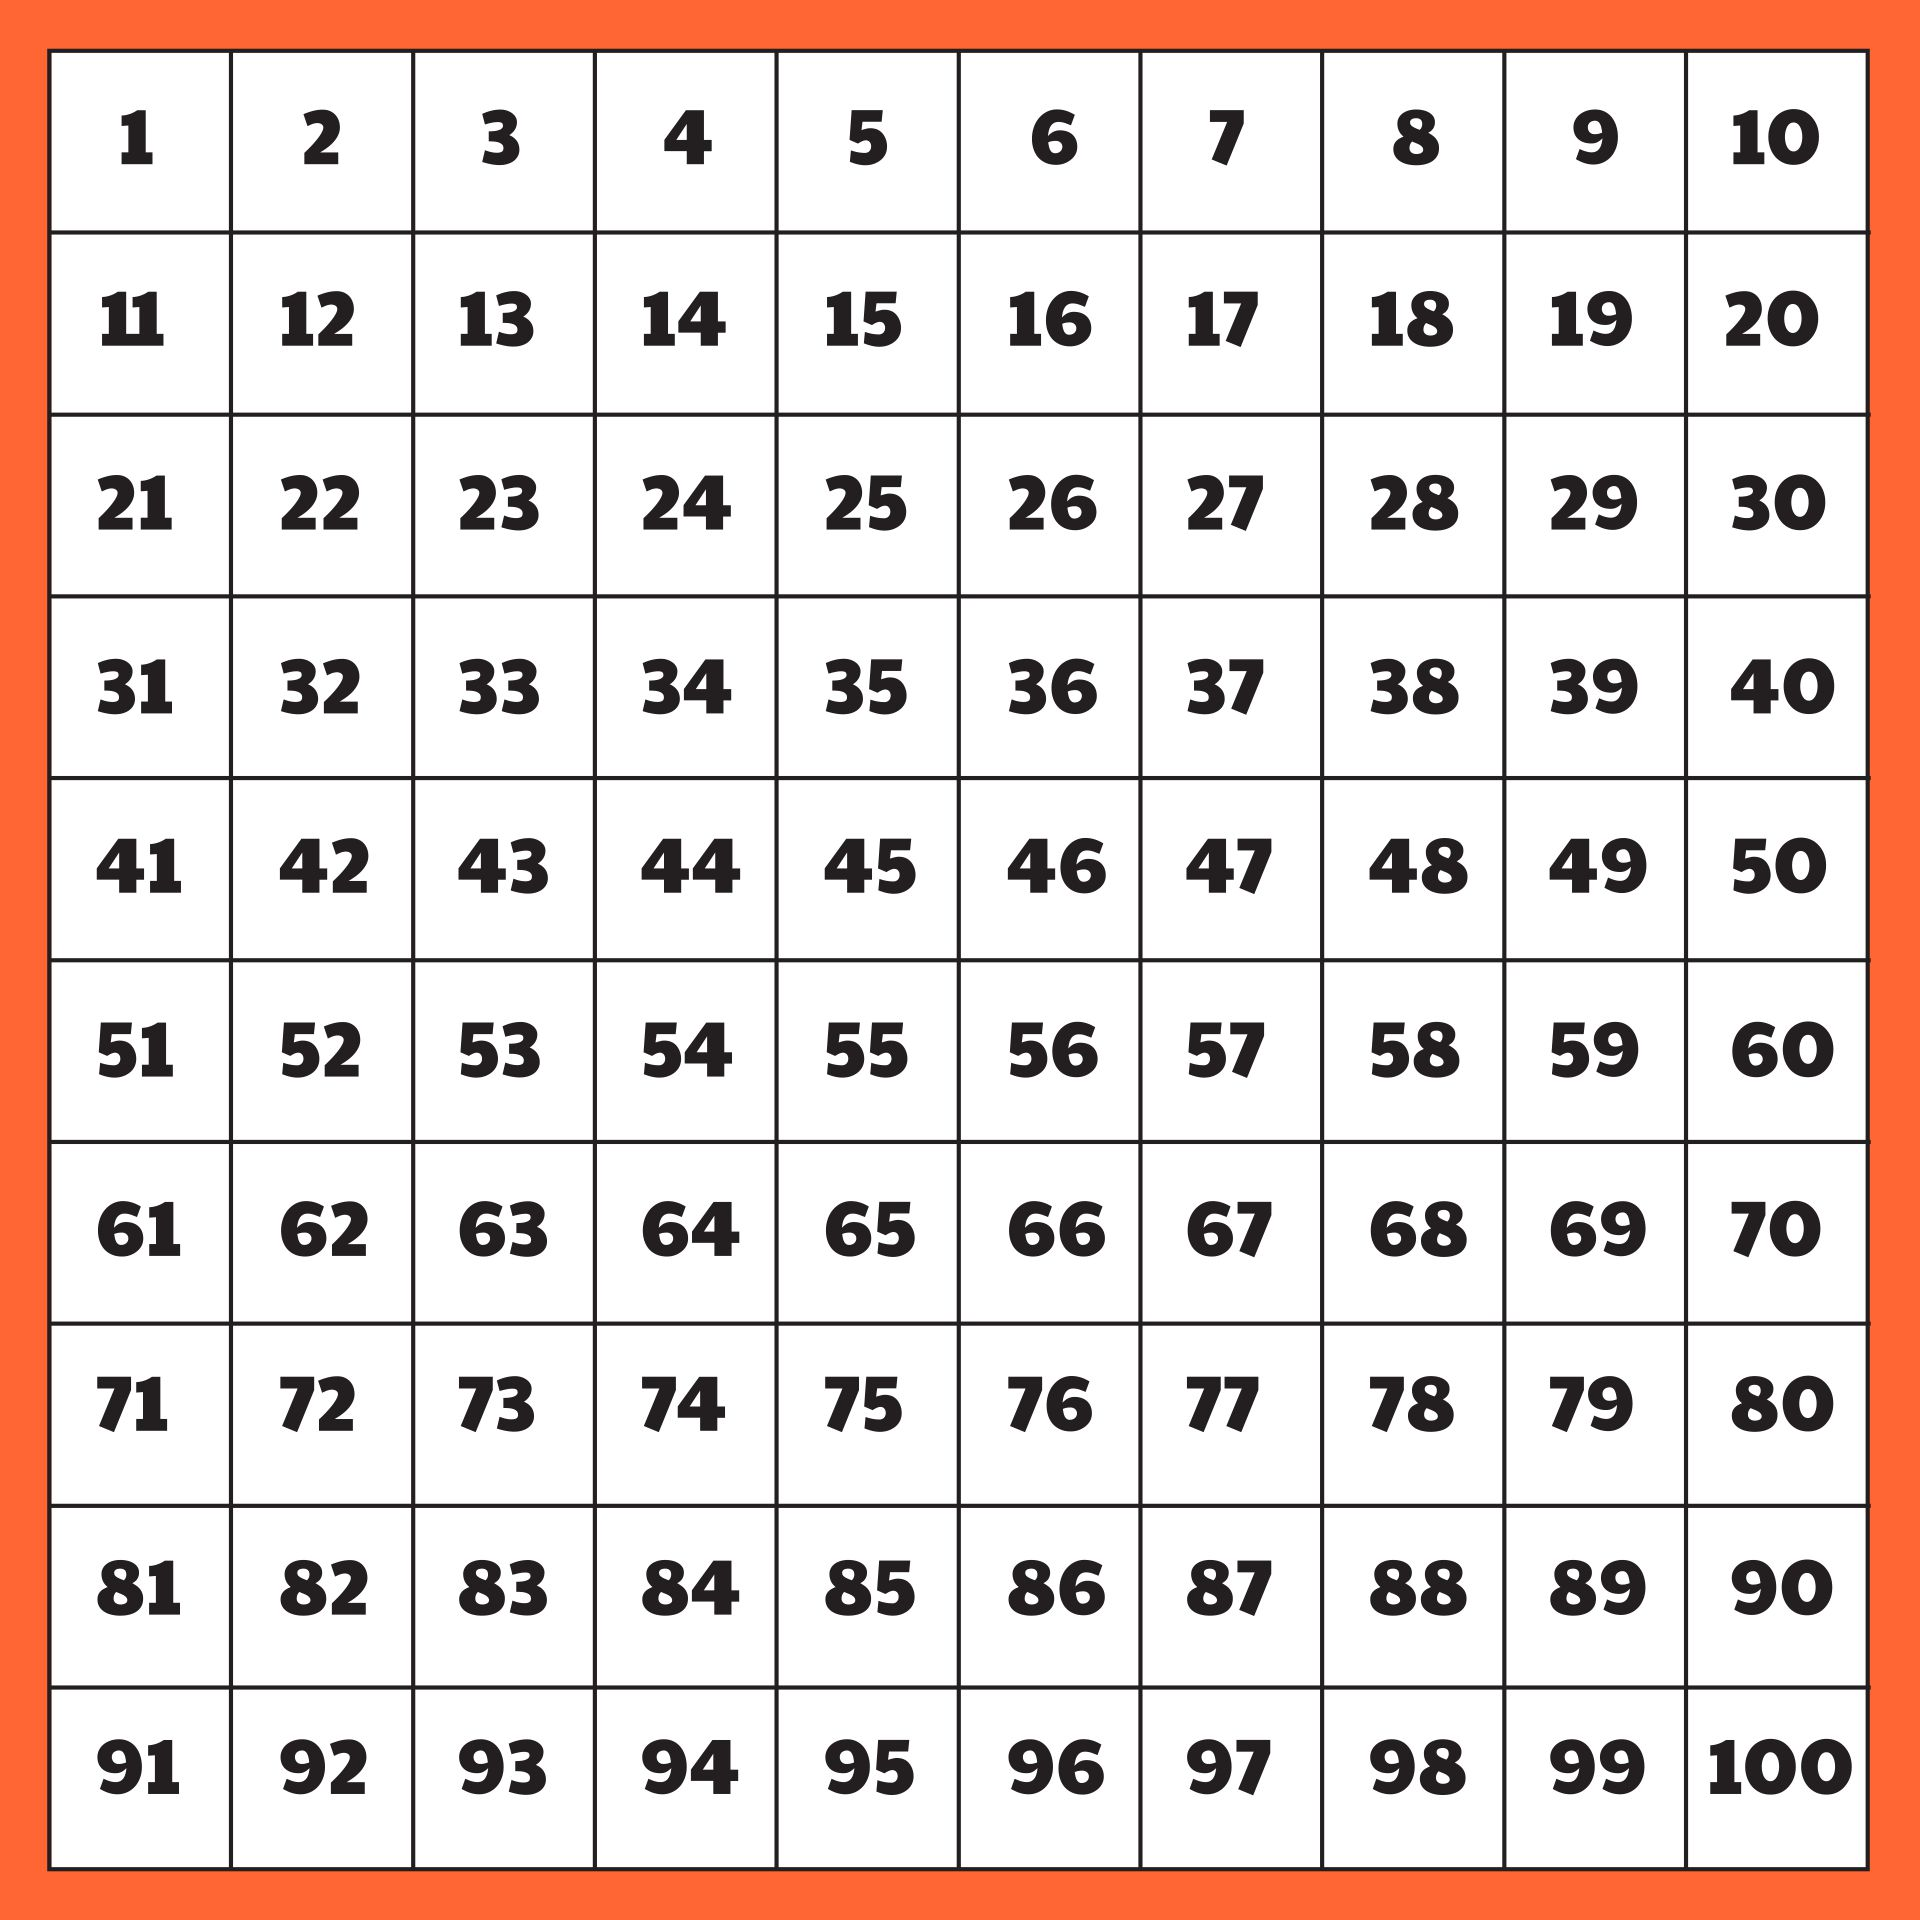 10 By 10 Grid With Numbers Printable